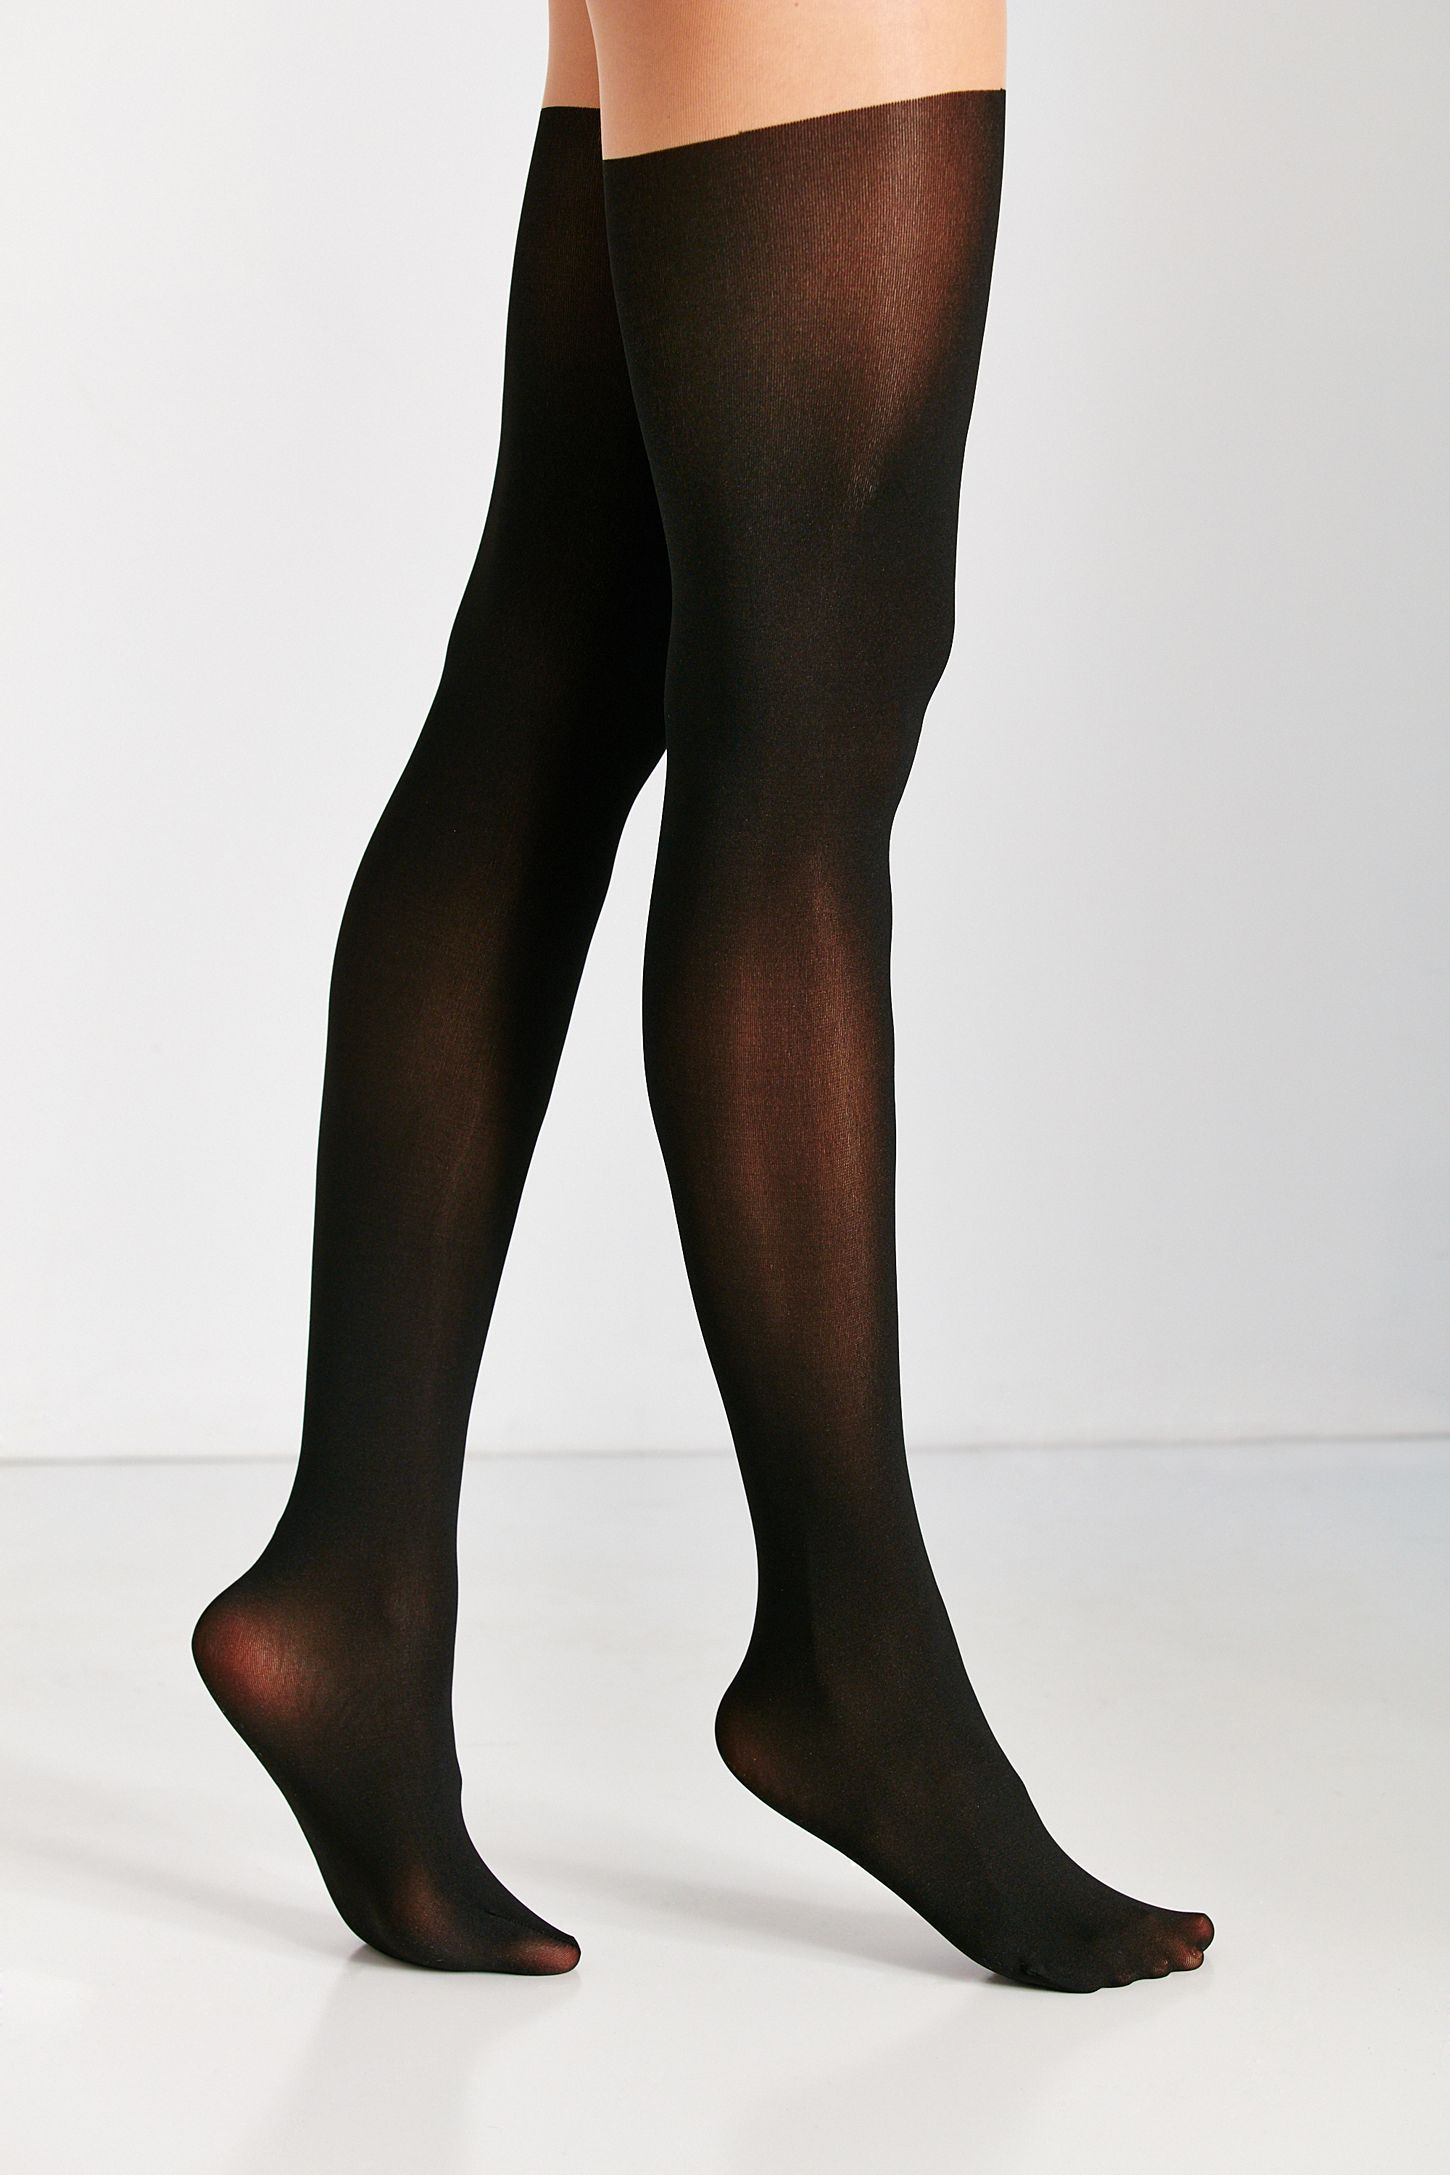 fda361bd67ed4 Pretty Polly Faux Over-The-Knee Tight | Urban Outfitters